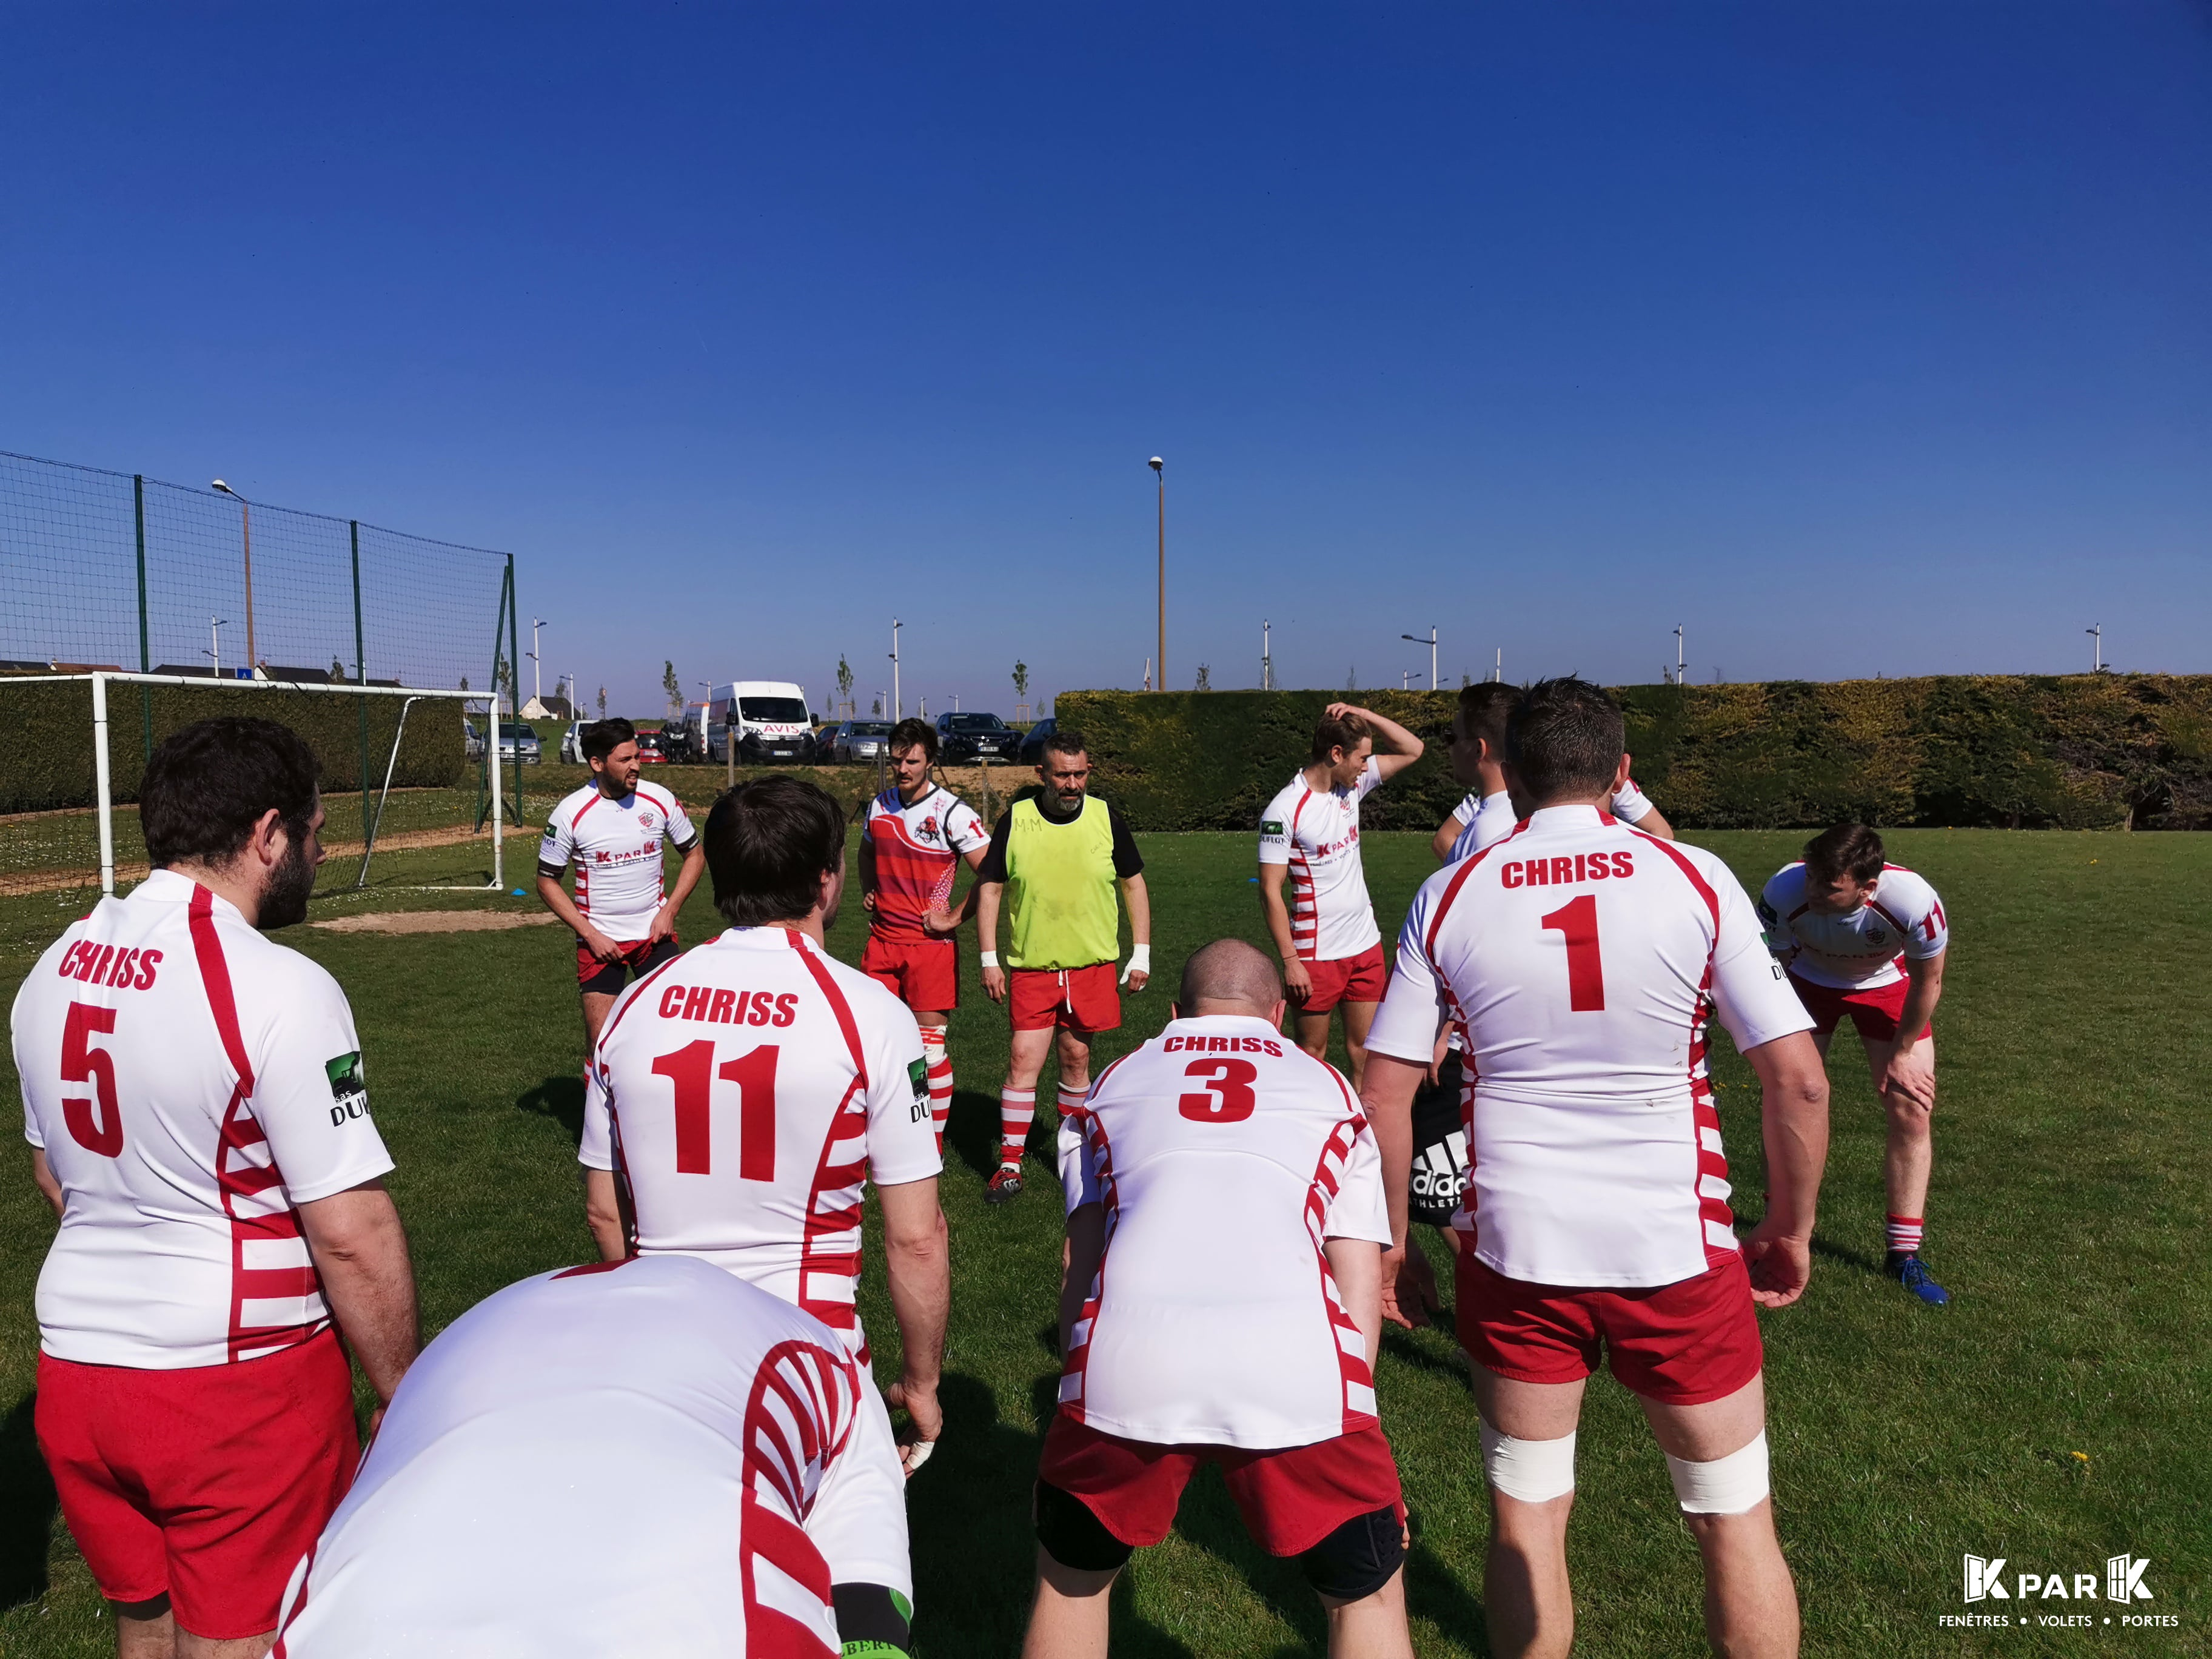 touche rugby tourcoing kpark